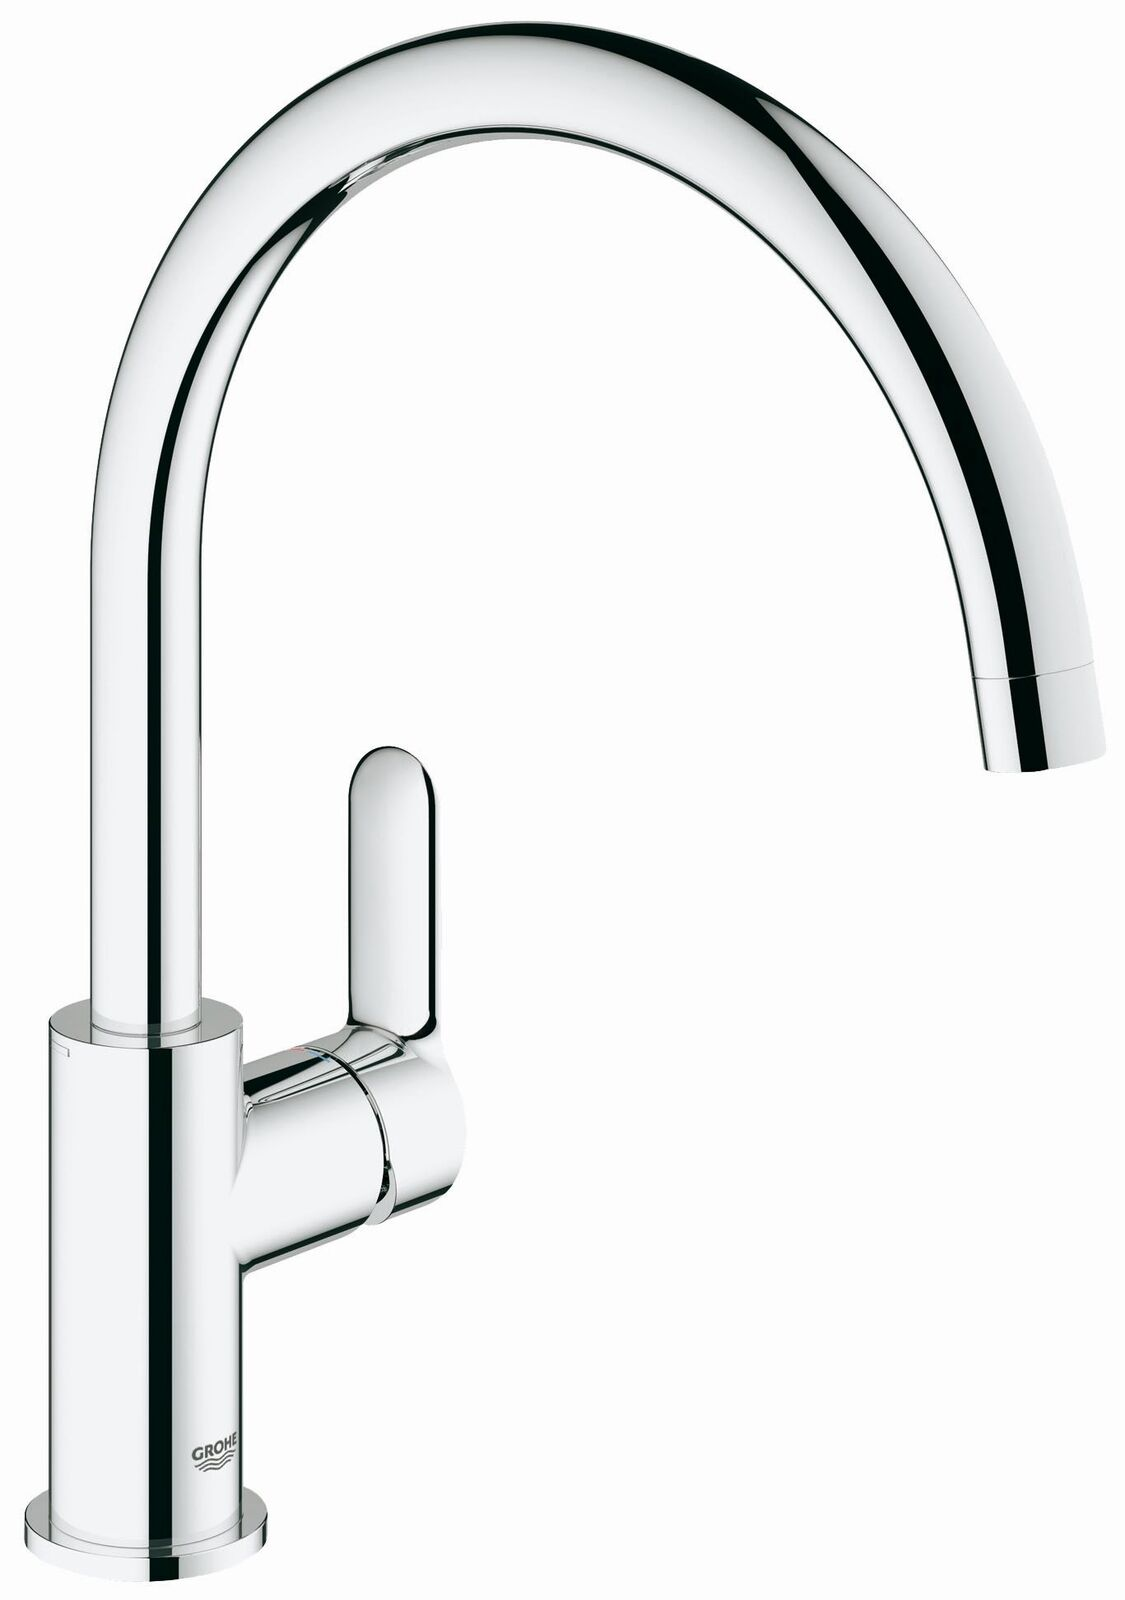 grohe sp ltischarmatur start edge verchromt armatur k chenarmatur wasserhahn eur 69 98. Black Bedroom Furniture Sets. Home Design Ideas